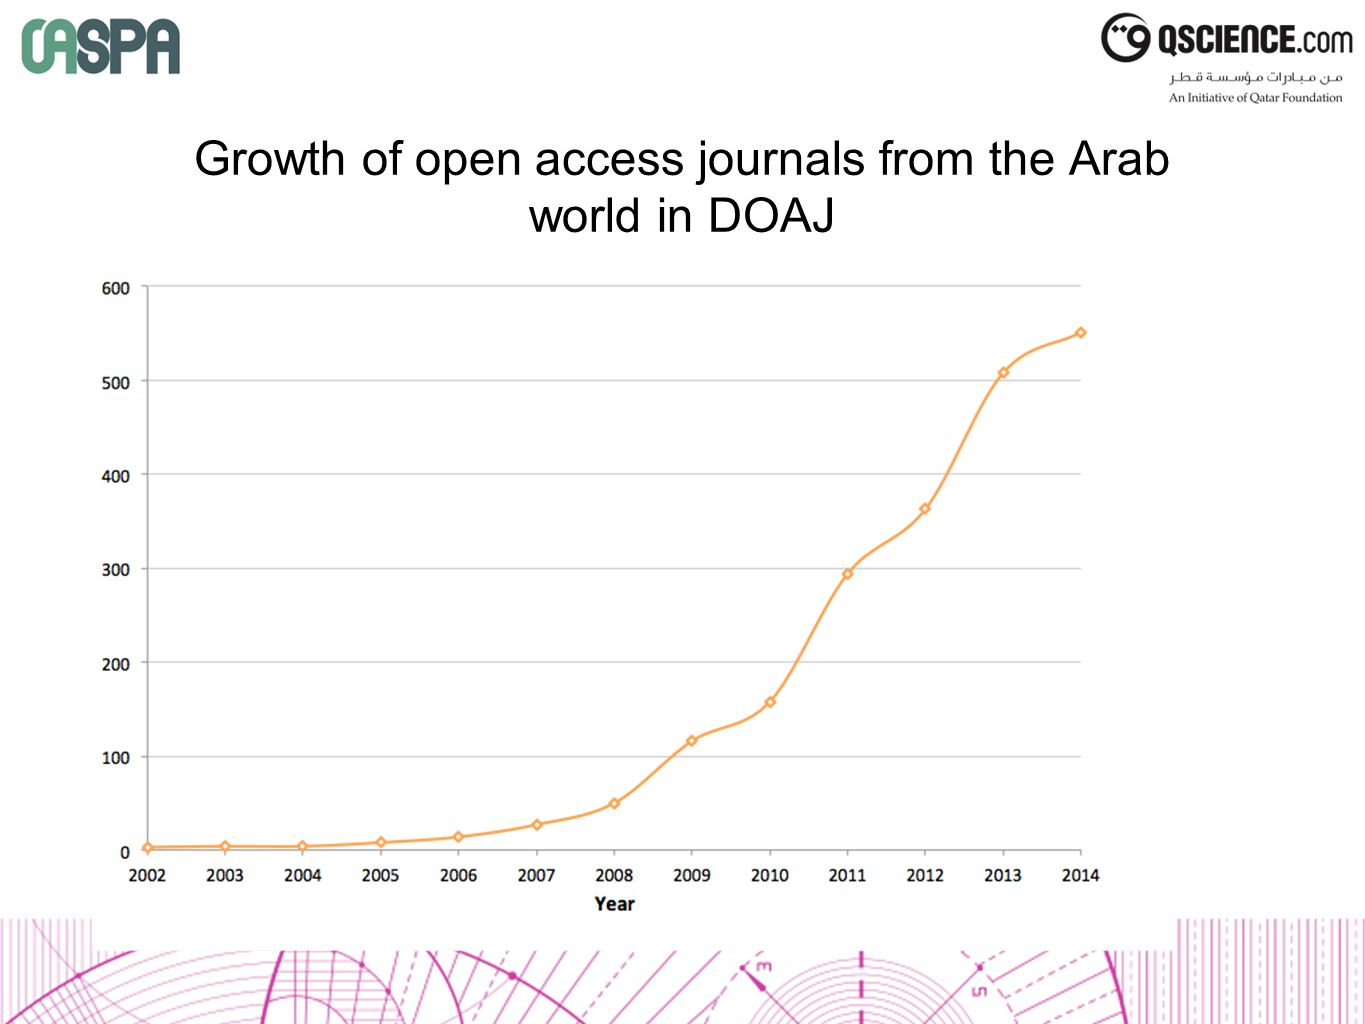 Growth of open access journals from the Arab world in DOAJ